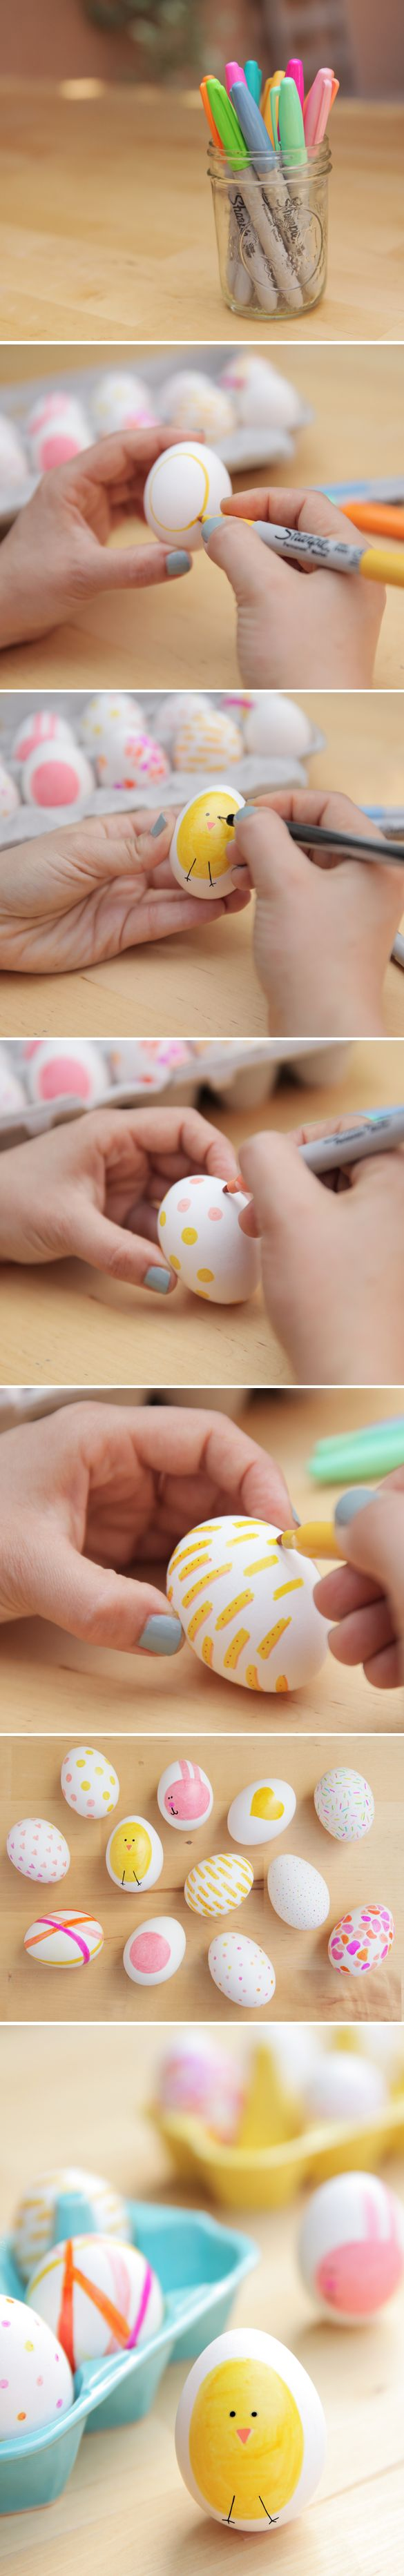 Easter Craft Craziness Part 1: Sharpie Eggs